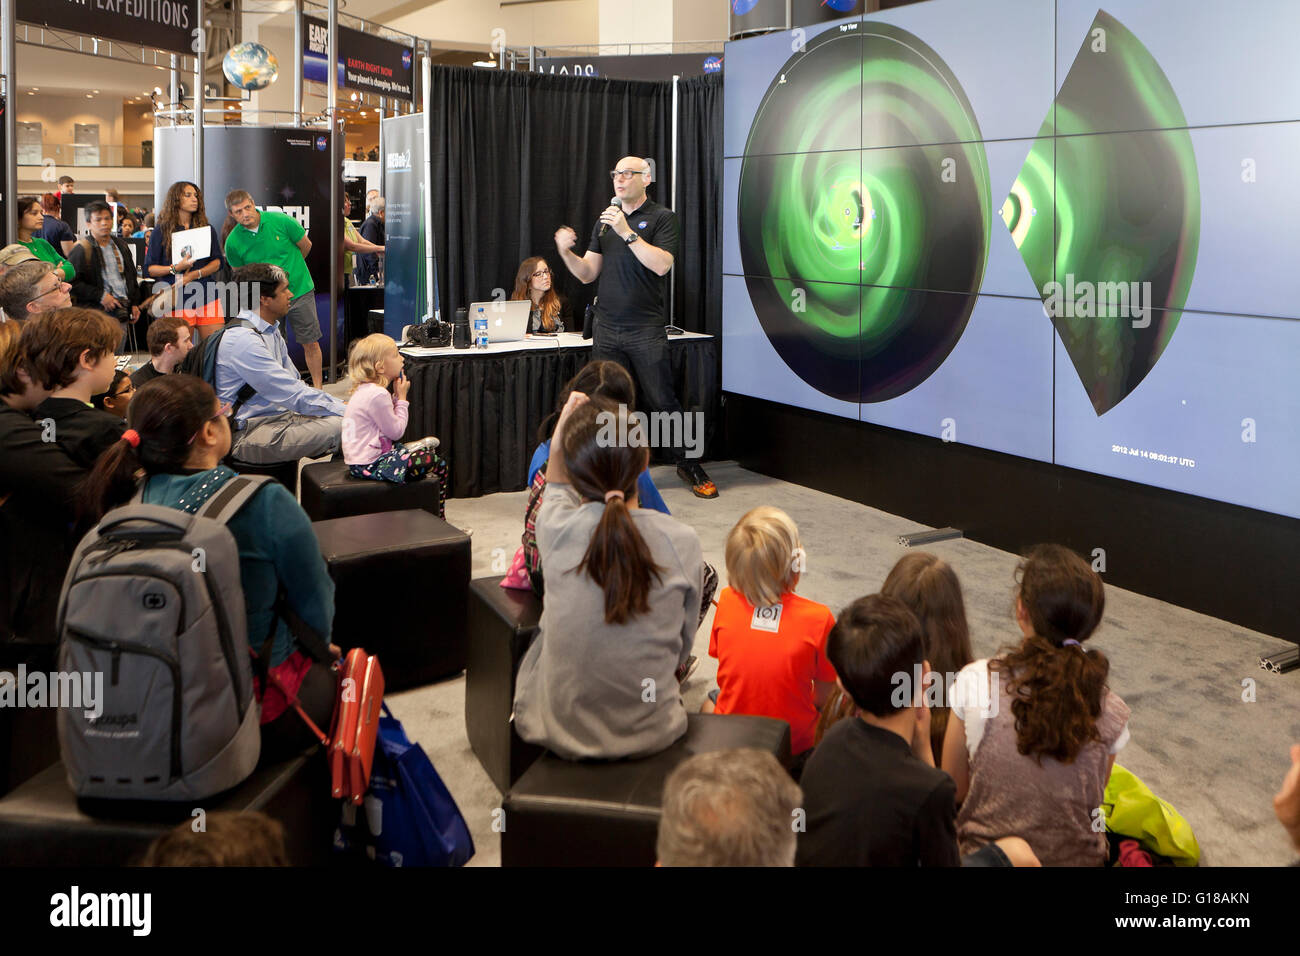 NASA scientist lecturing to children about space at science fair - USA - Stock Image